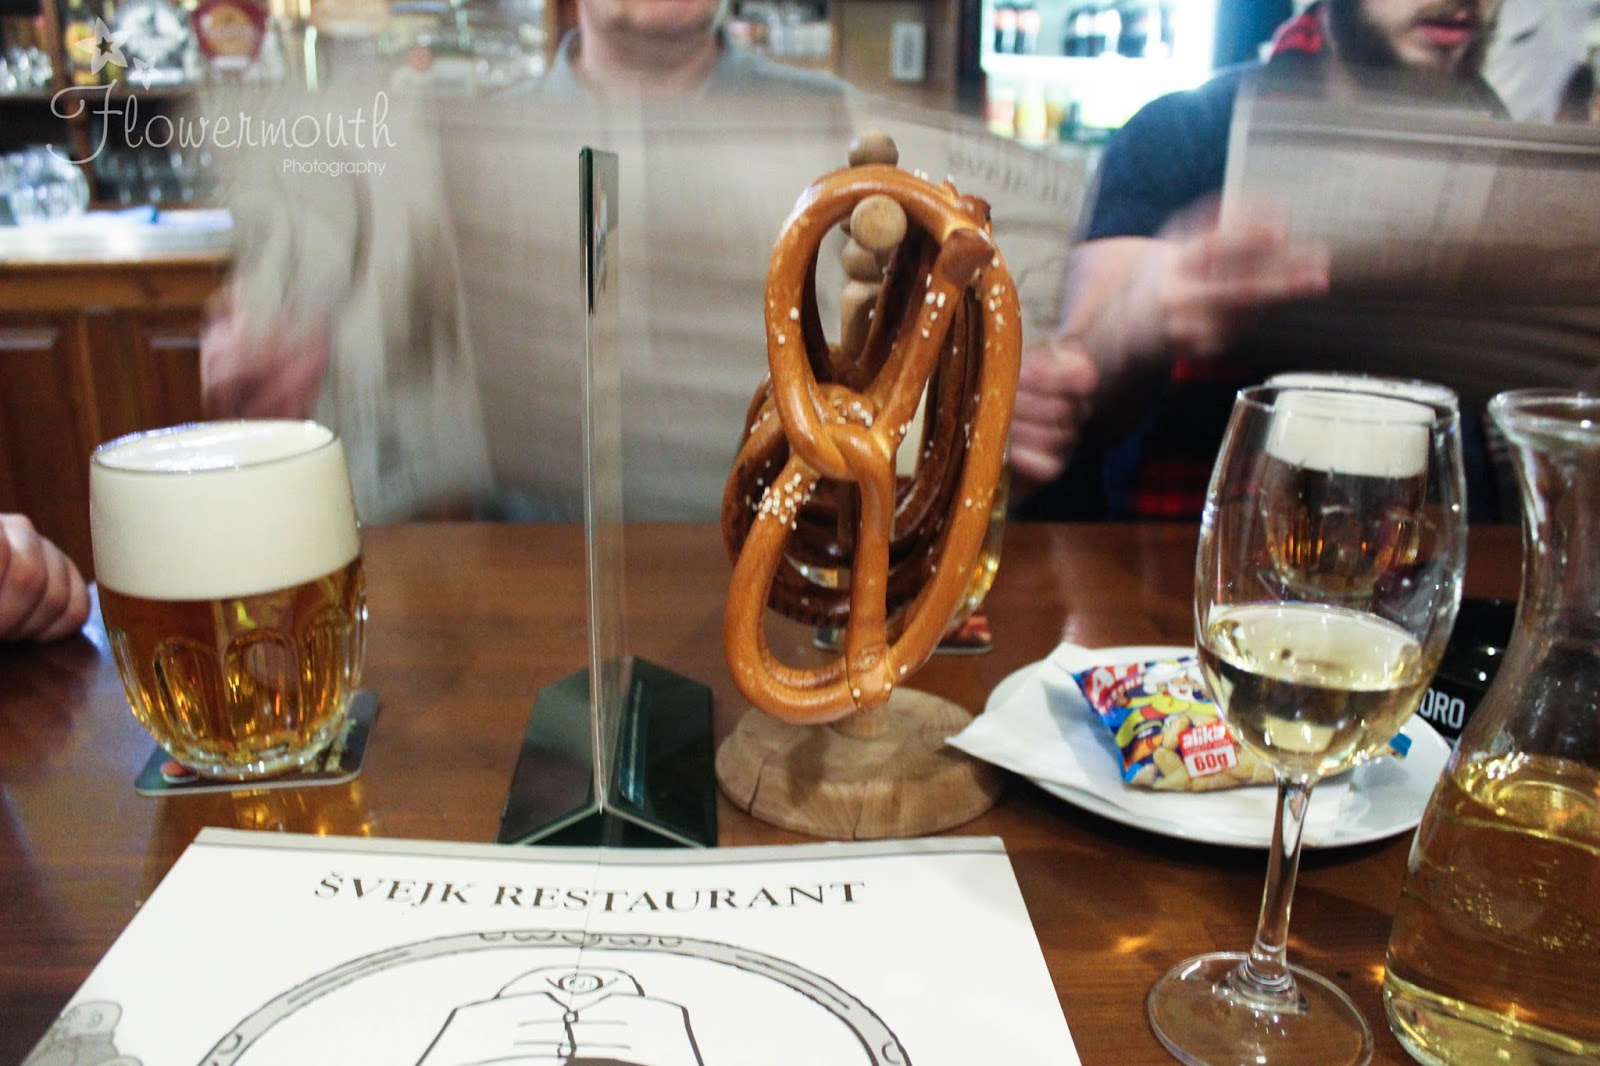 Pretzels and wine in prague